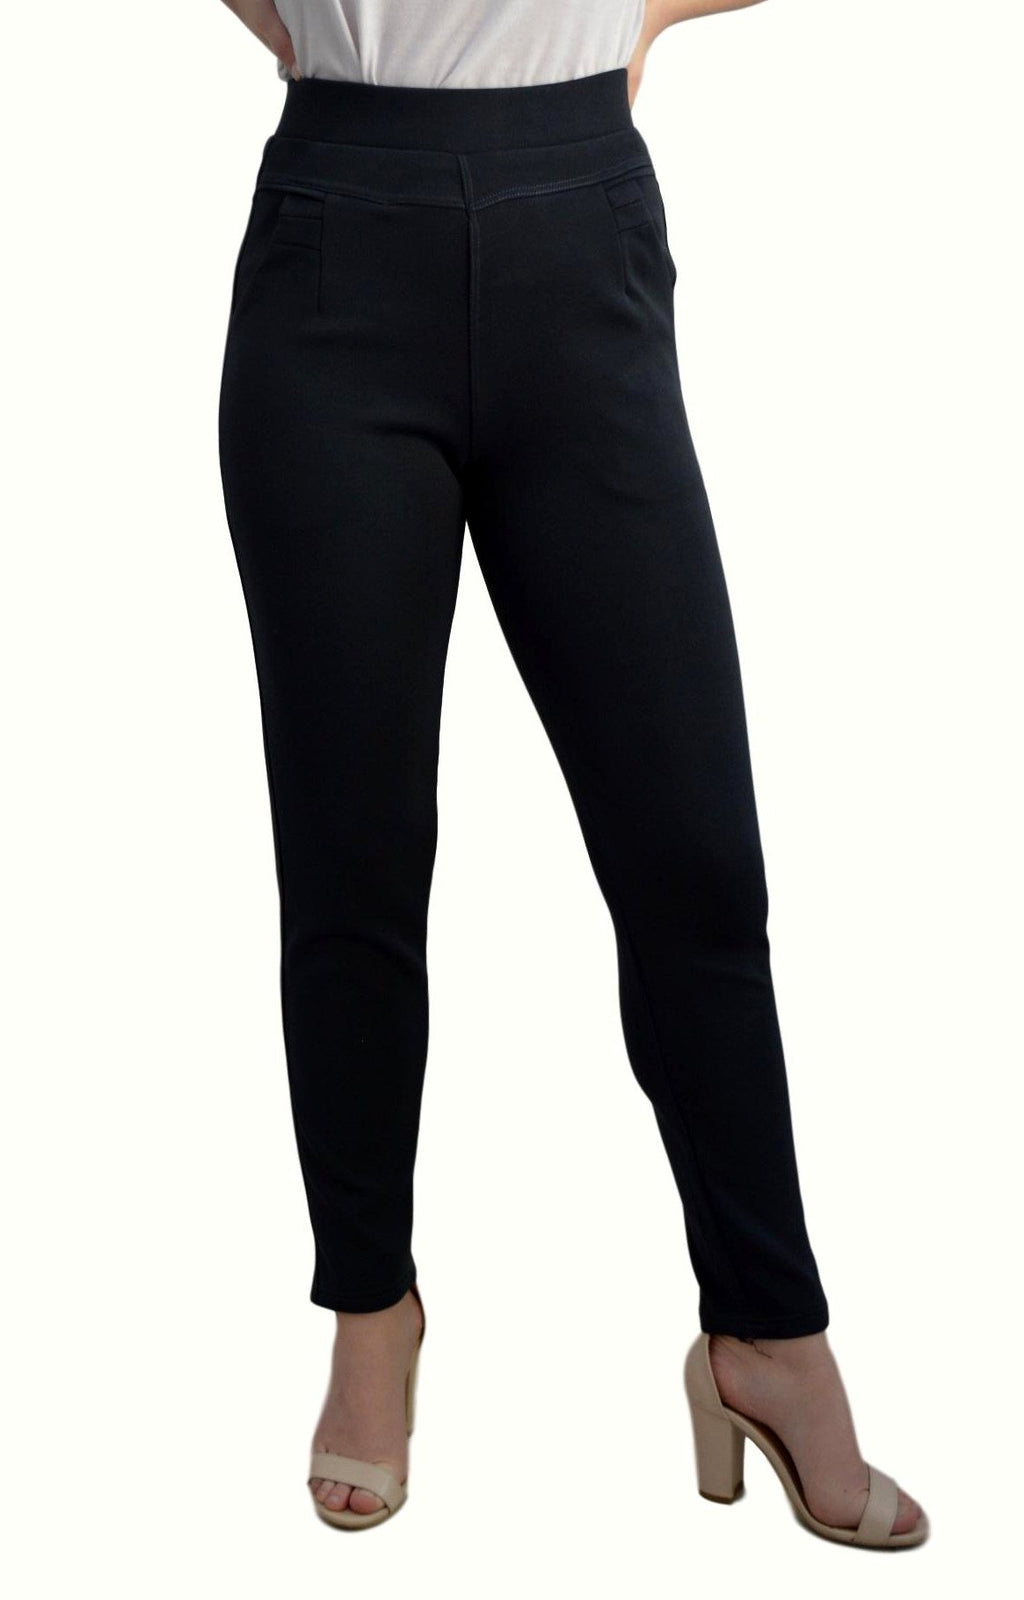 Electra Straight Pant in black